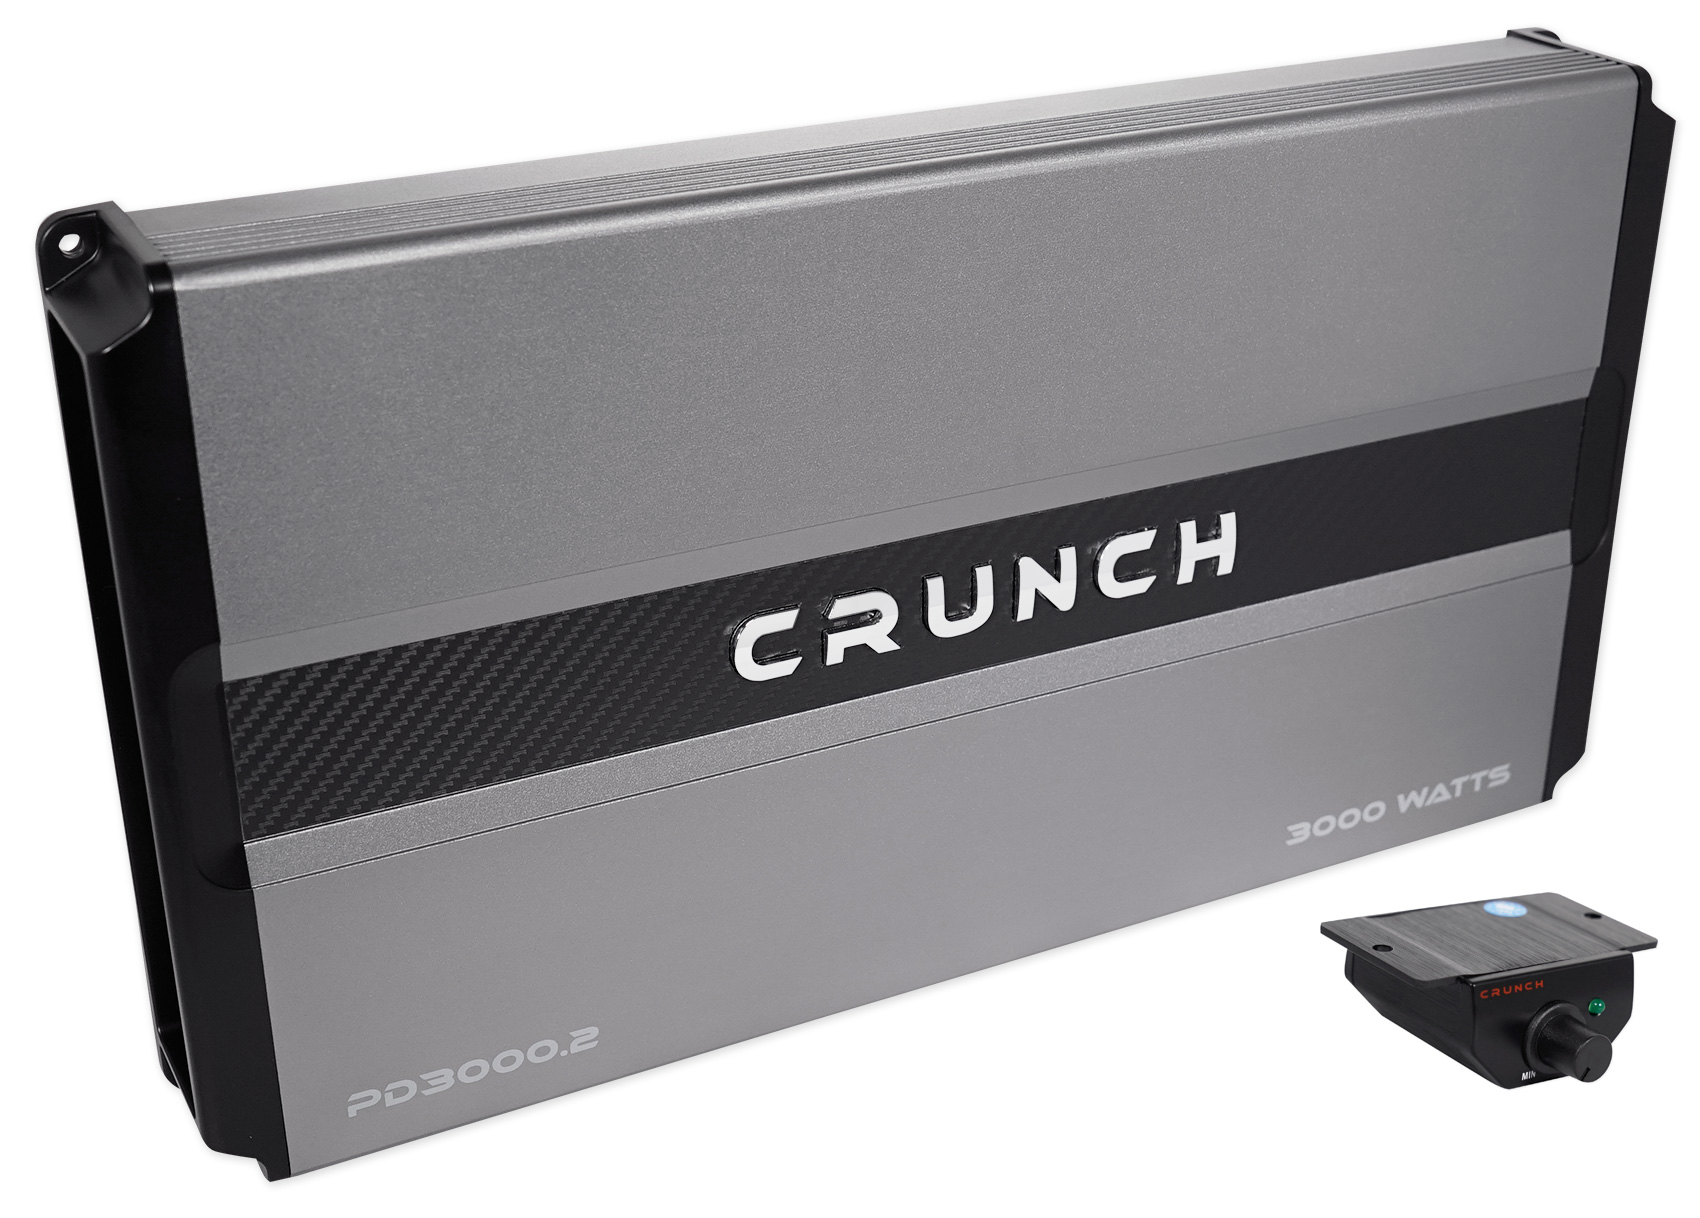 Crunch PD3000.2PROPOWER Pd 3000.2 Pro Power Power Drive Class Ab 2-channel